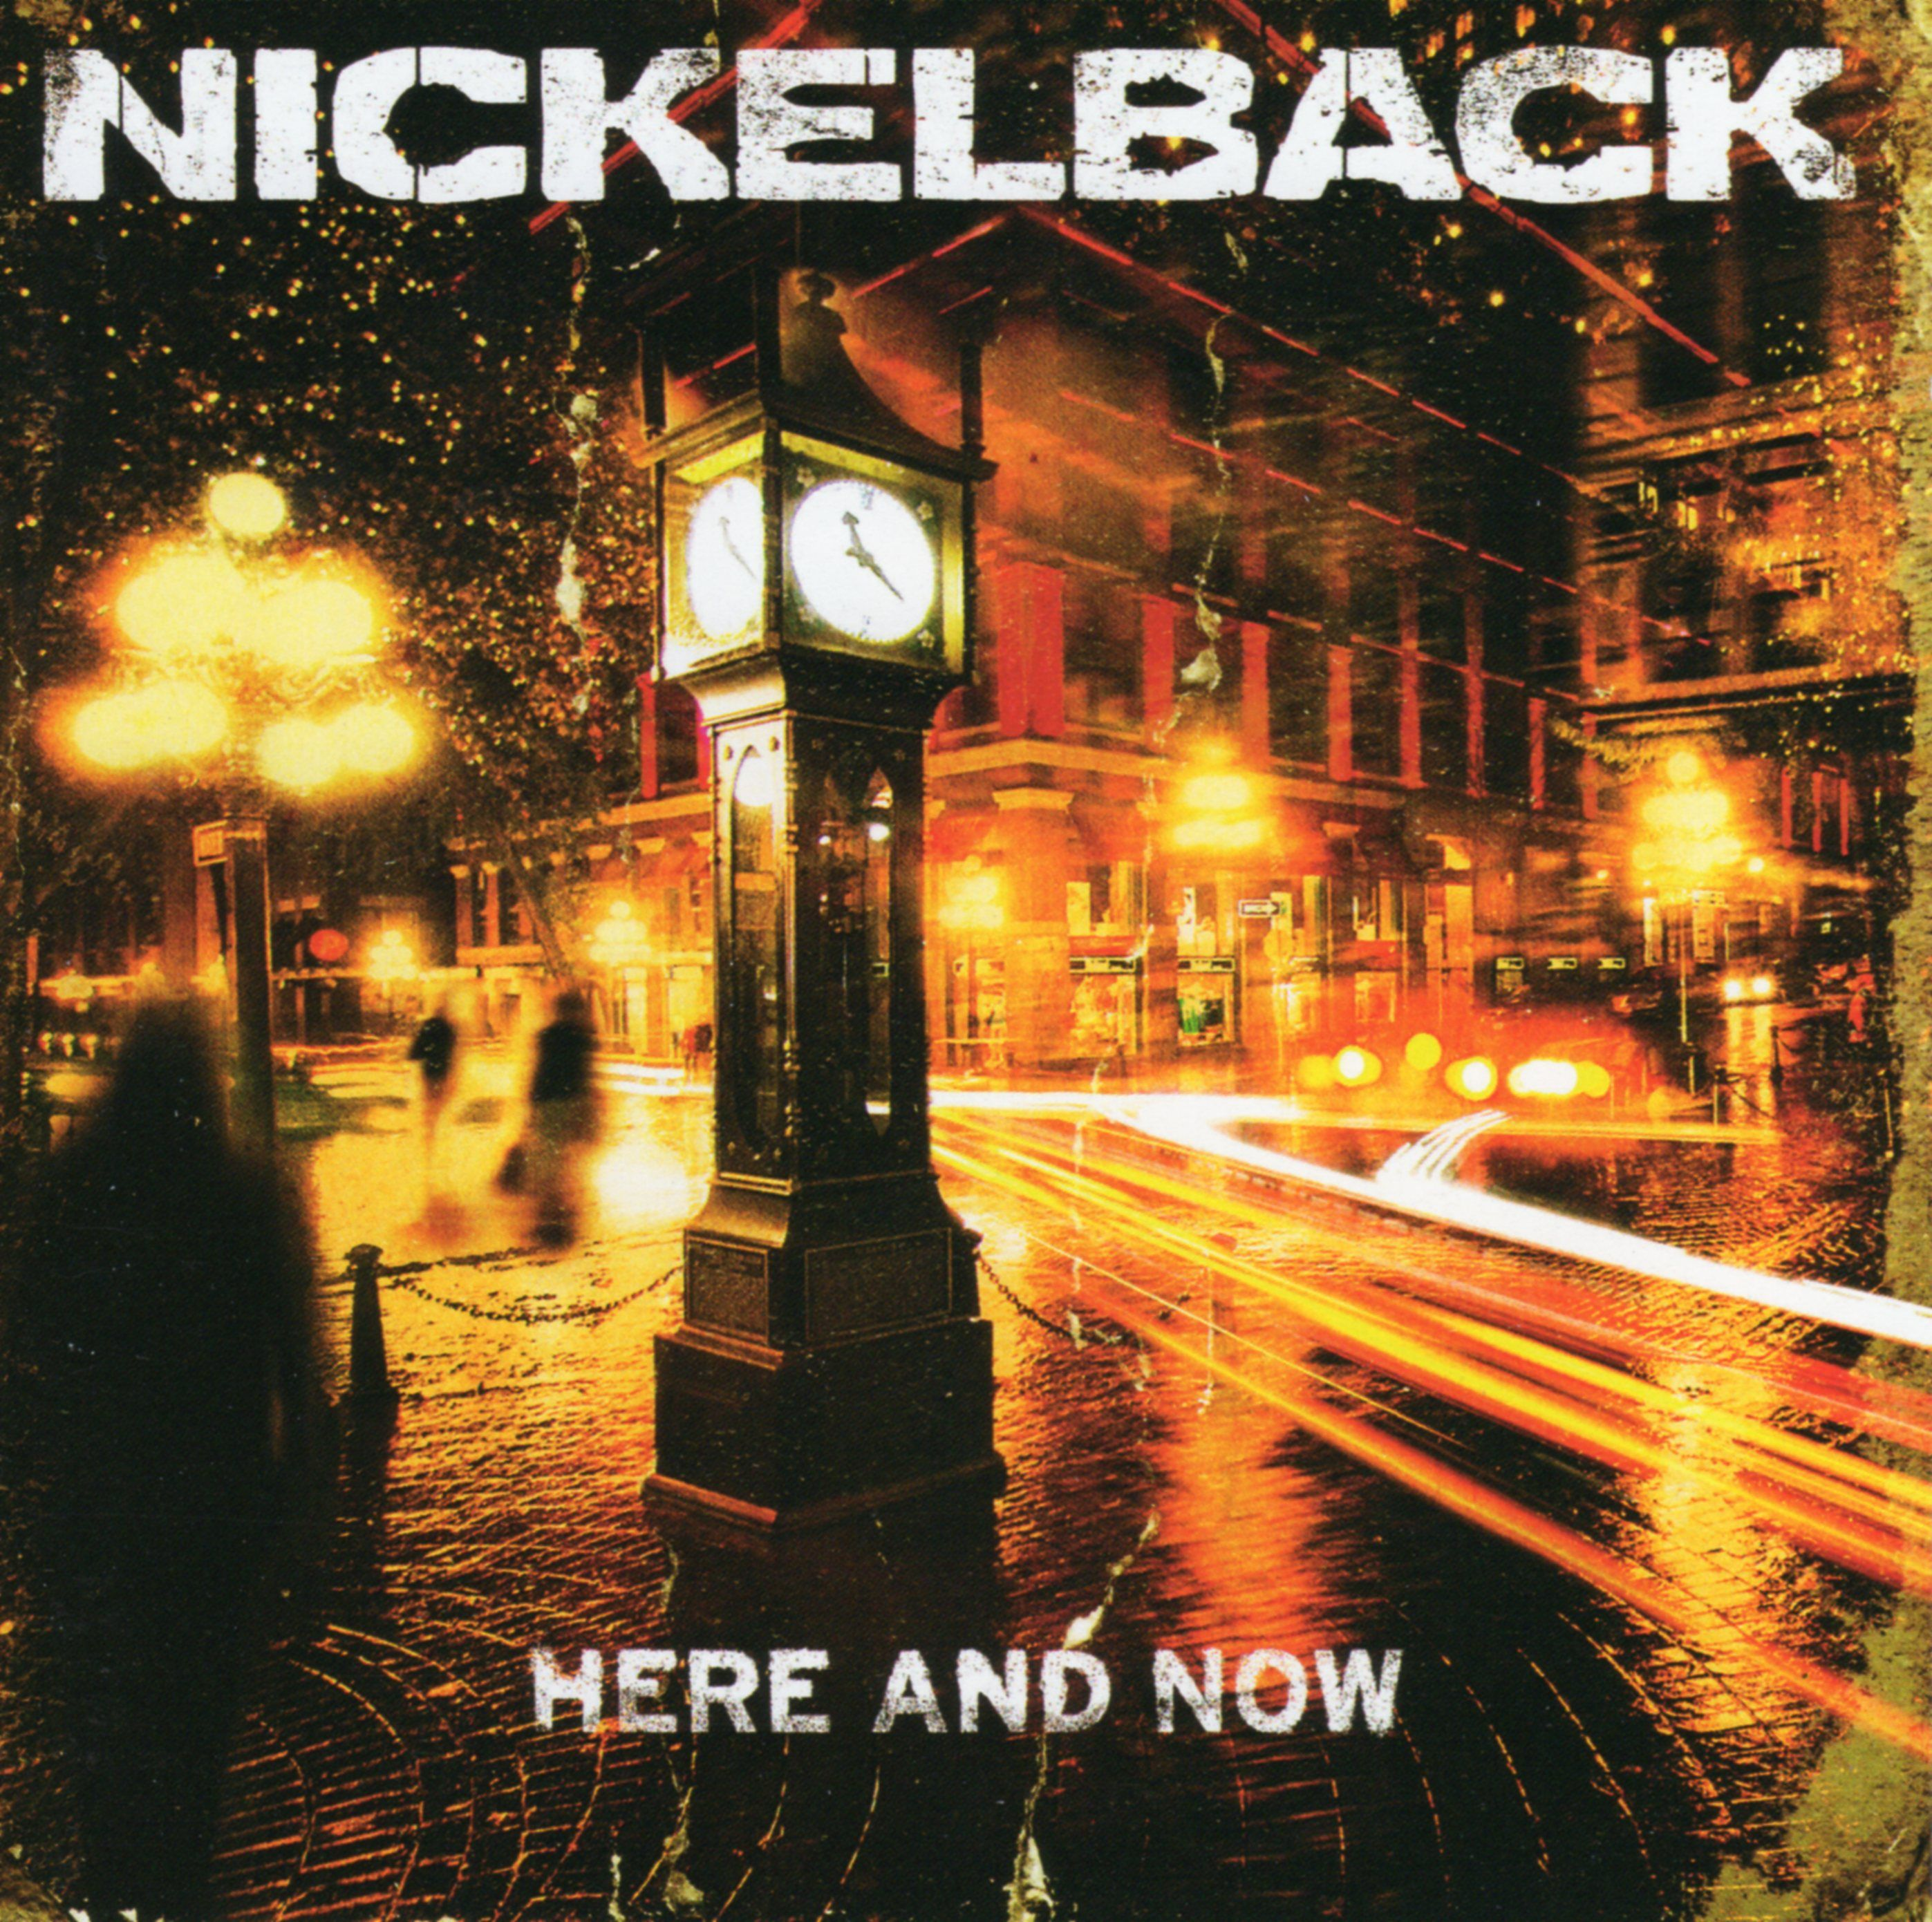 Nickelback - Here And Now album cover